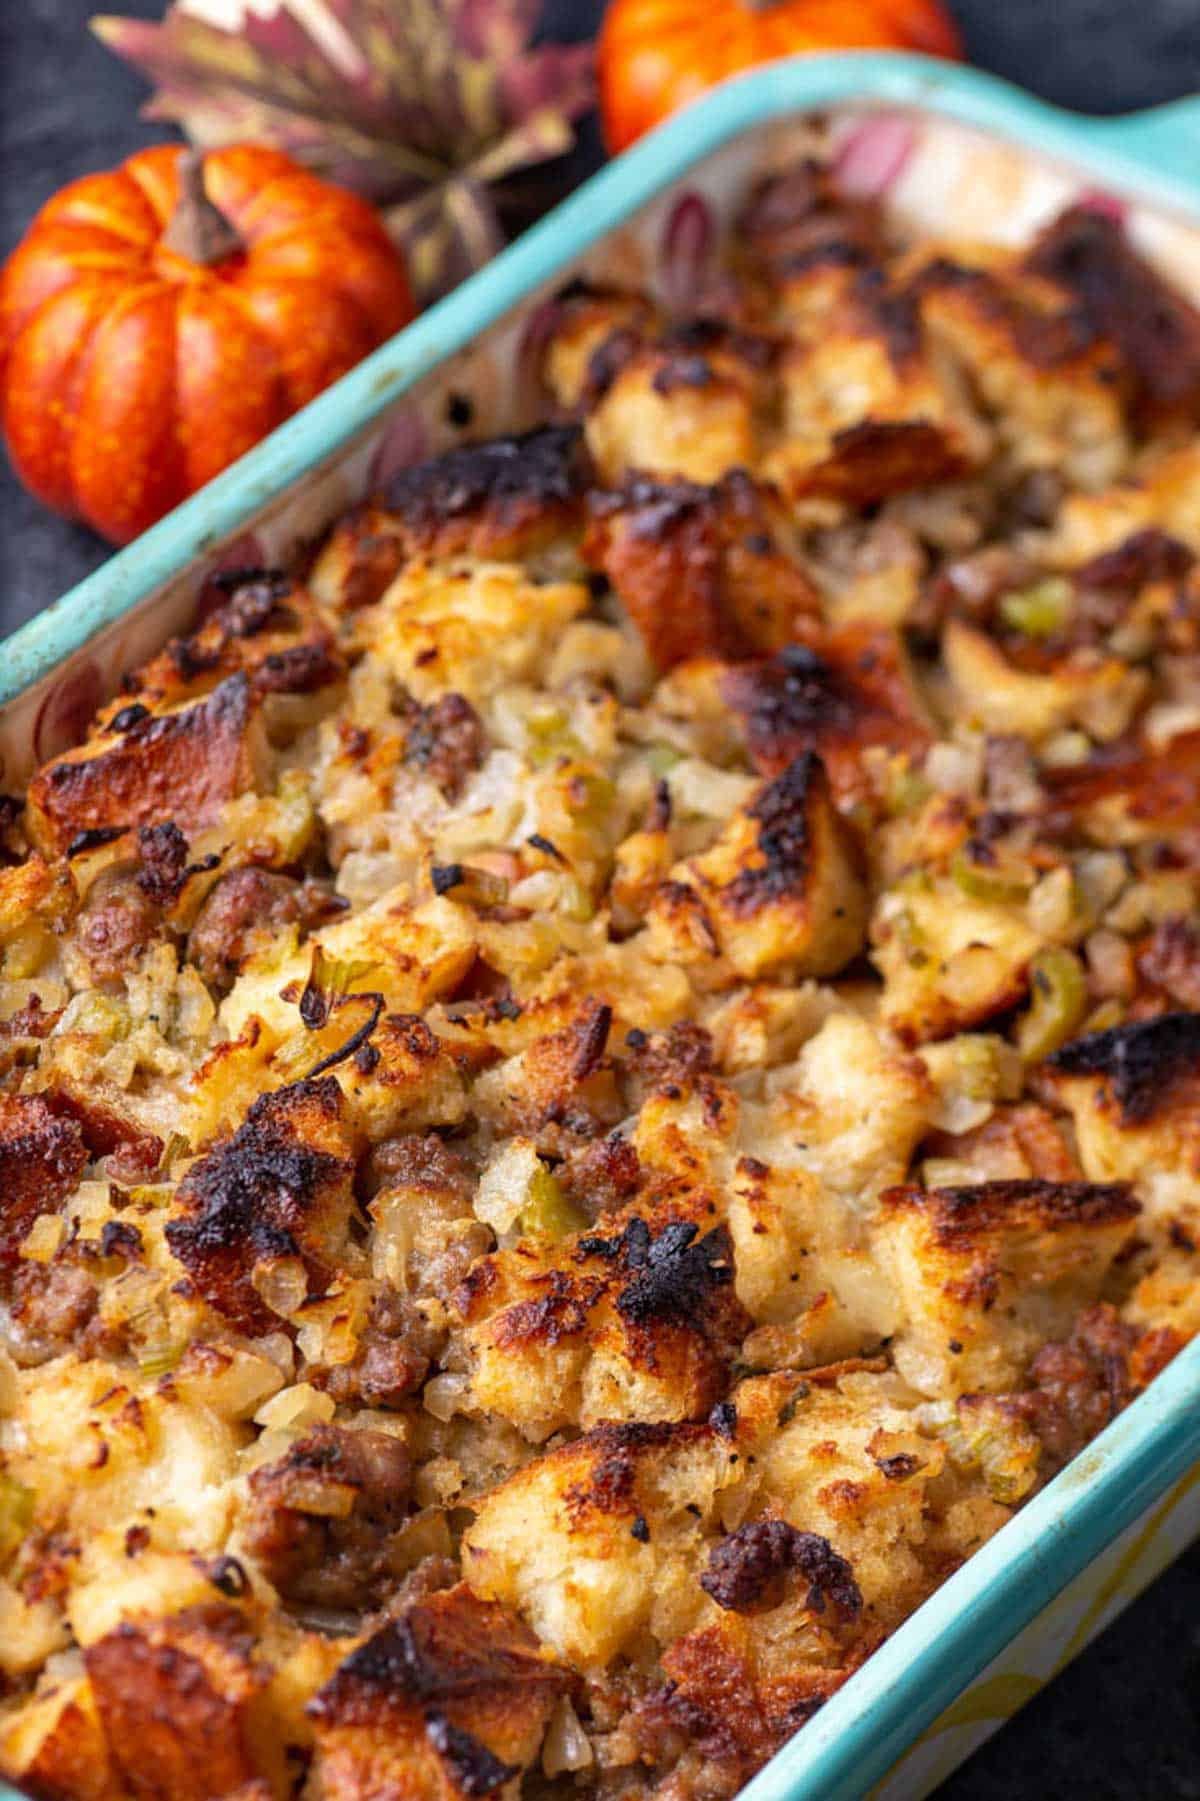 A casserole dish of baked stuffing.